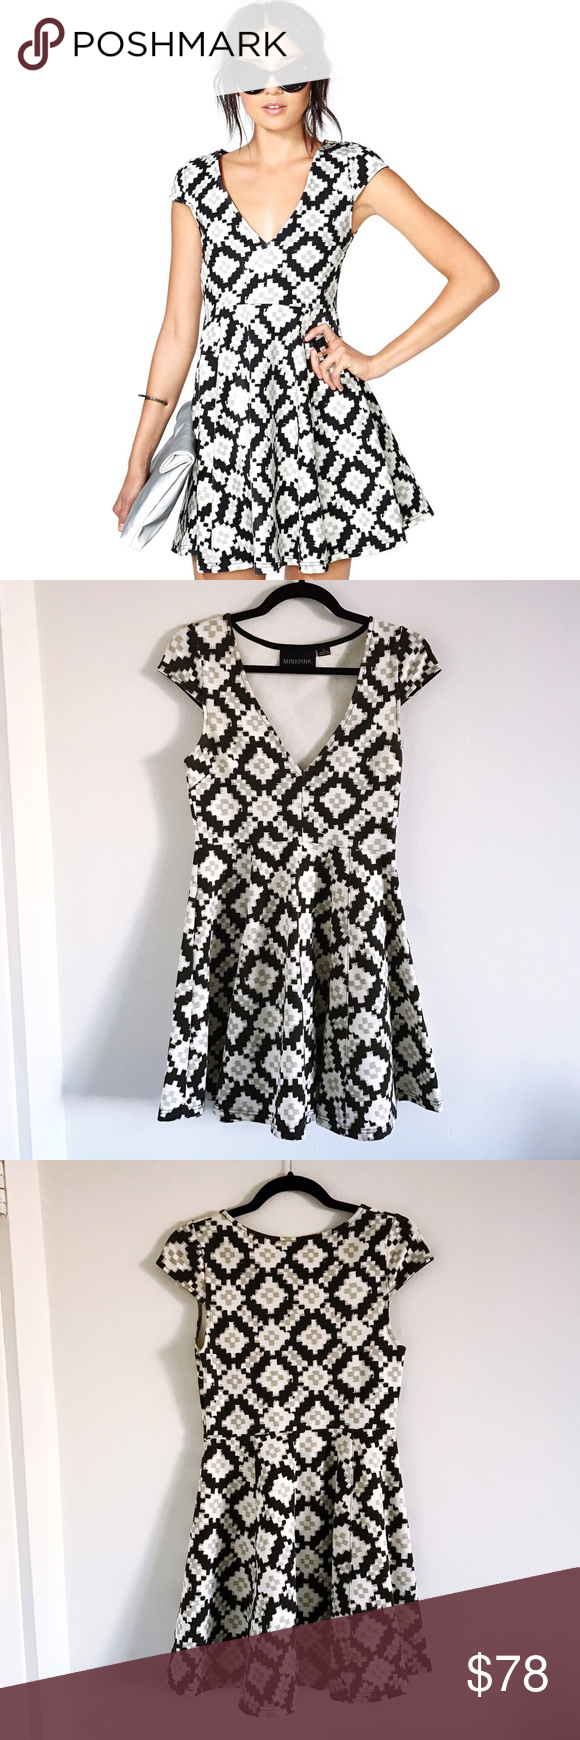 Minkpink Abstract Dress 🖤 Versus From The Abstract dress by Minkpink sold at Nasty Gal and Nordstrom. Perfect condition and SO flattering. The fabric is thick but stretchy and amazing quality! Make me an offer! 🖤 Nasty Gal Dresses Mini